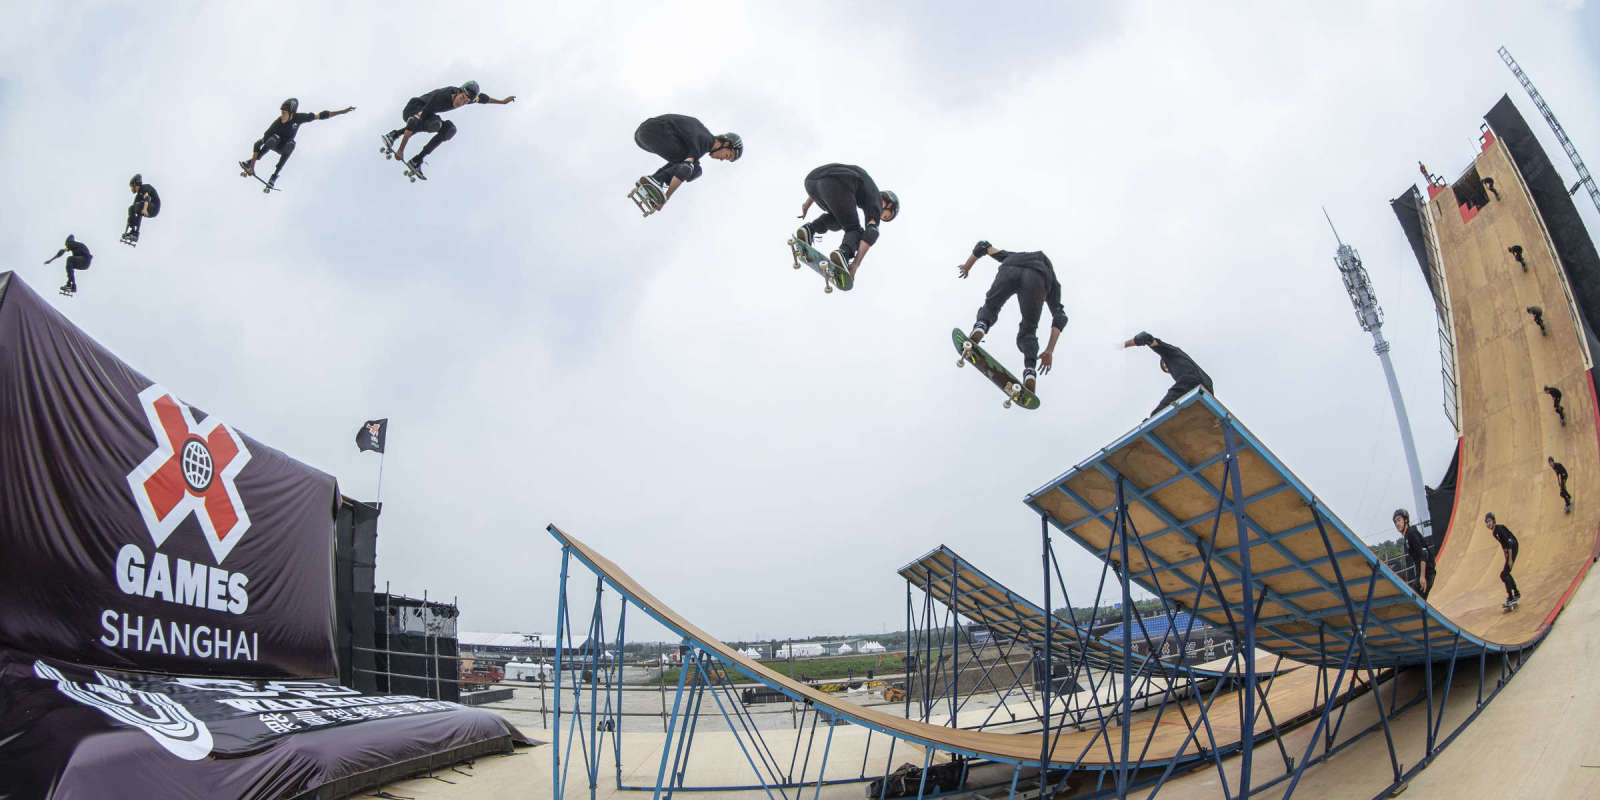 Images from the 2019 Skateboard Big Air at the X Games event in Shanghai, China